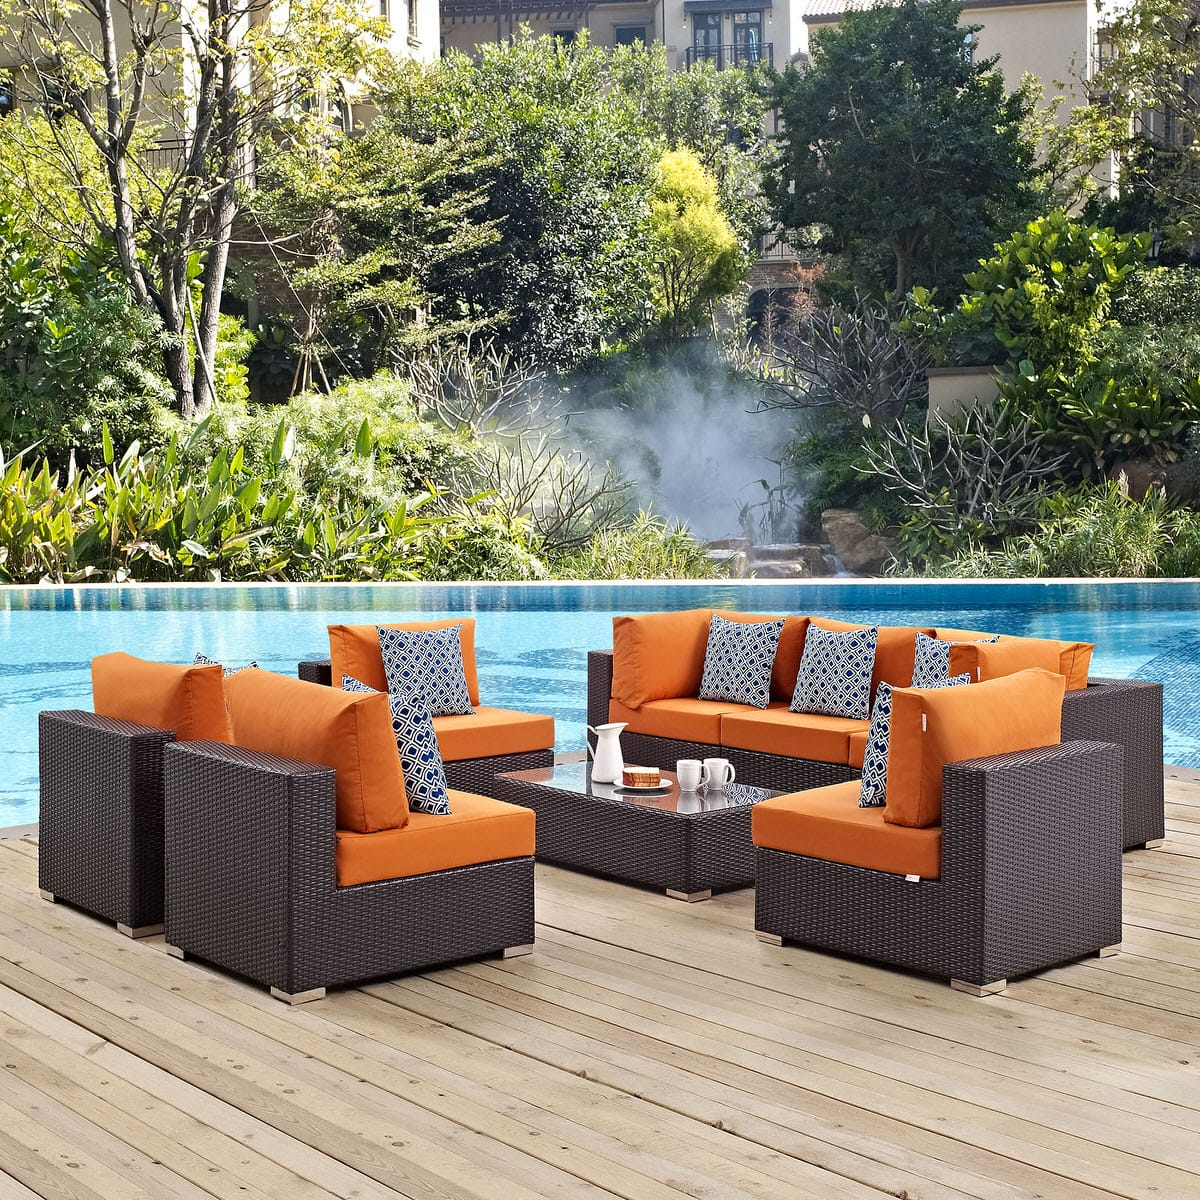 u product set outdoor patio sale icon for shape sectional contract amber sofa